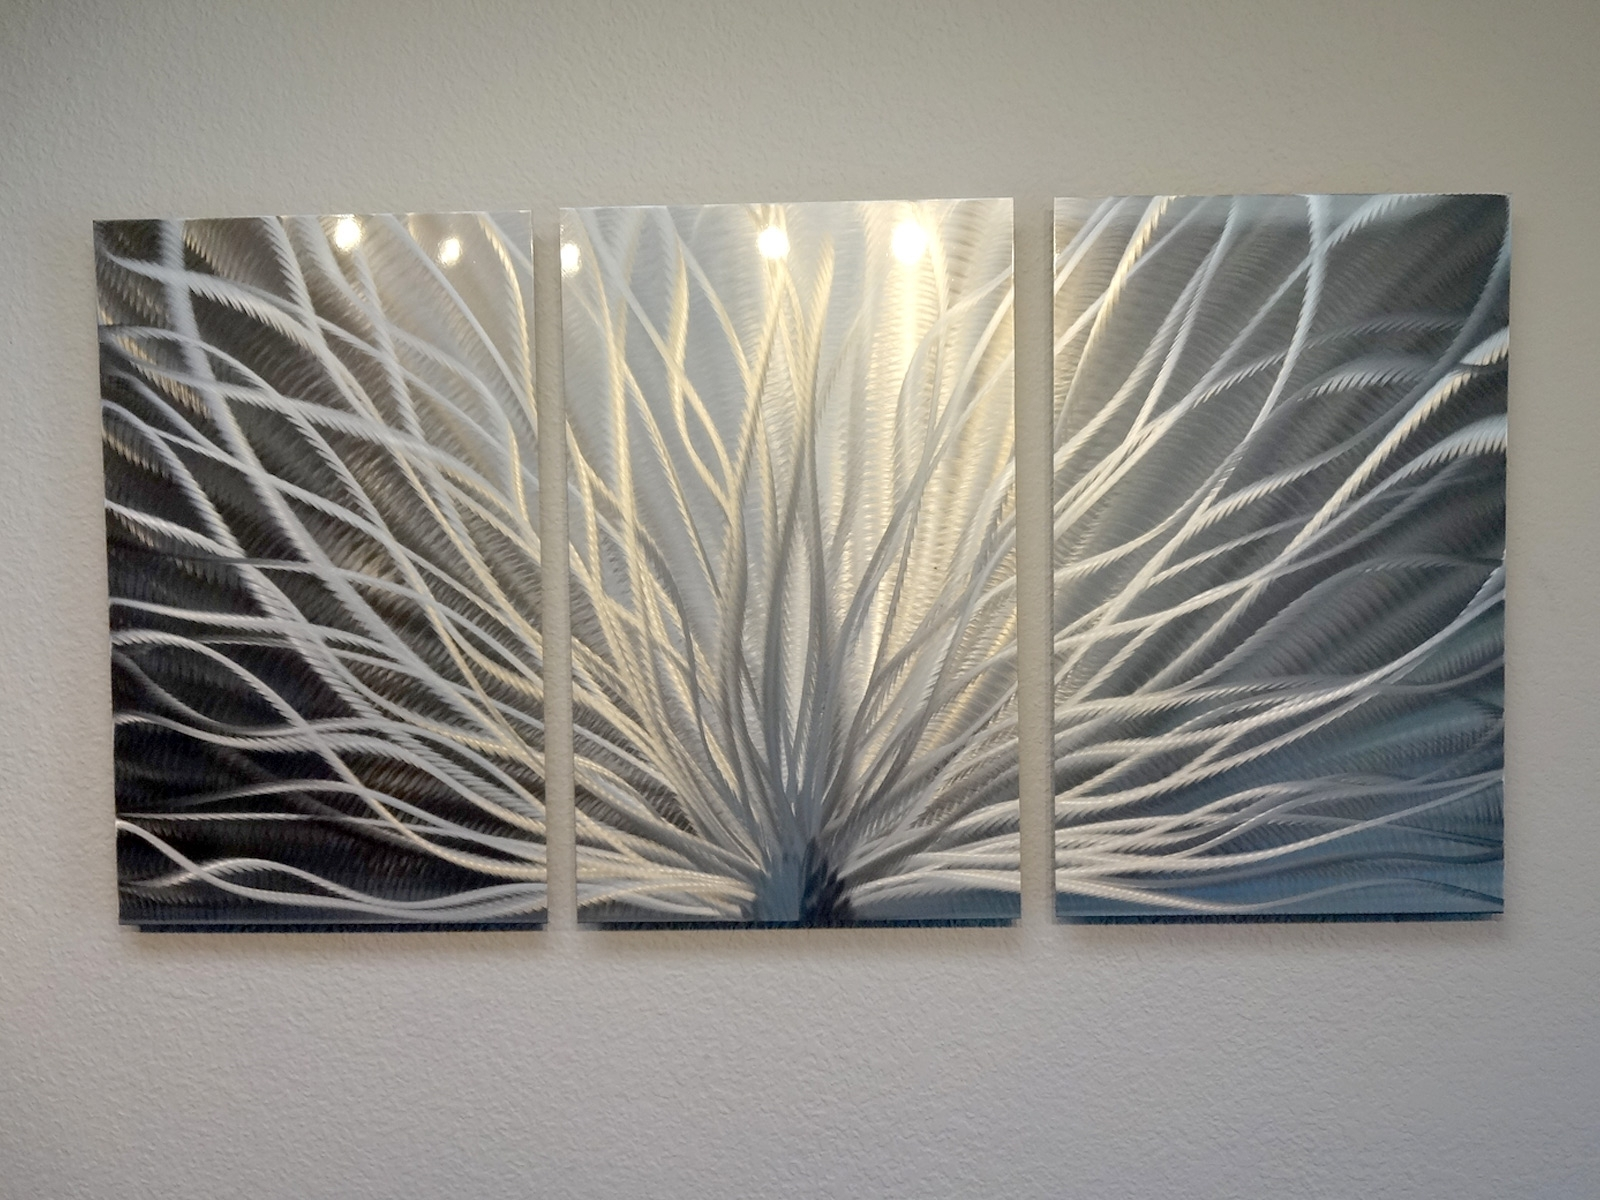 Radiance – 3 Panel Metal Wall Art Abstract Contemporary Modern With Current Abstract Metal Wall Art Panels (Gallery 5 of 20)